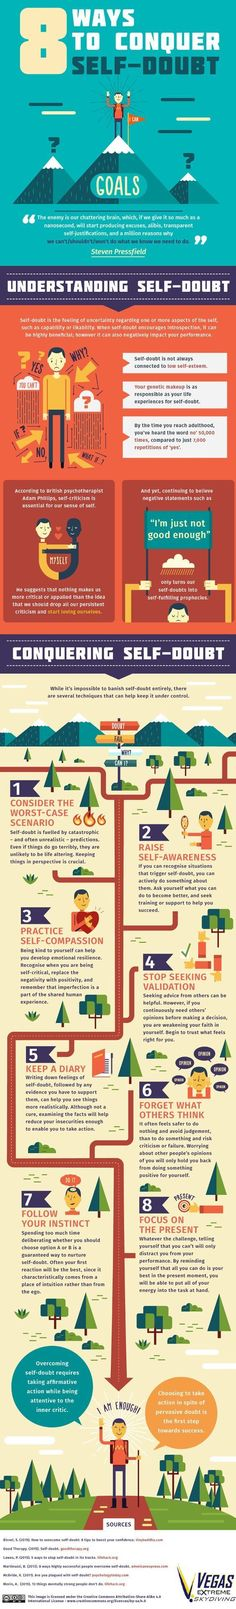 8 ways to conquer self-doubt!